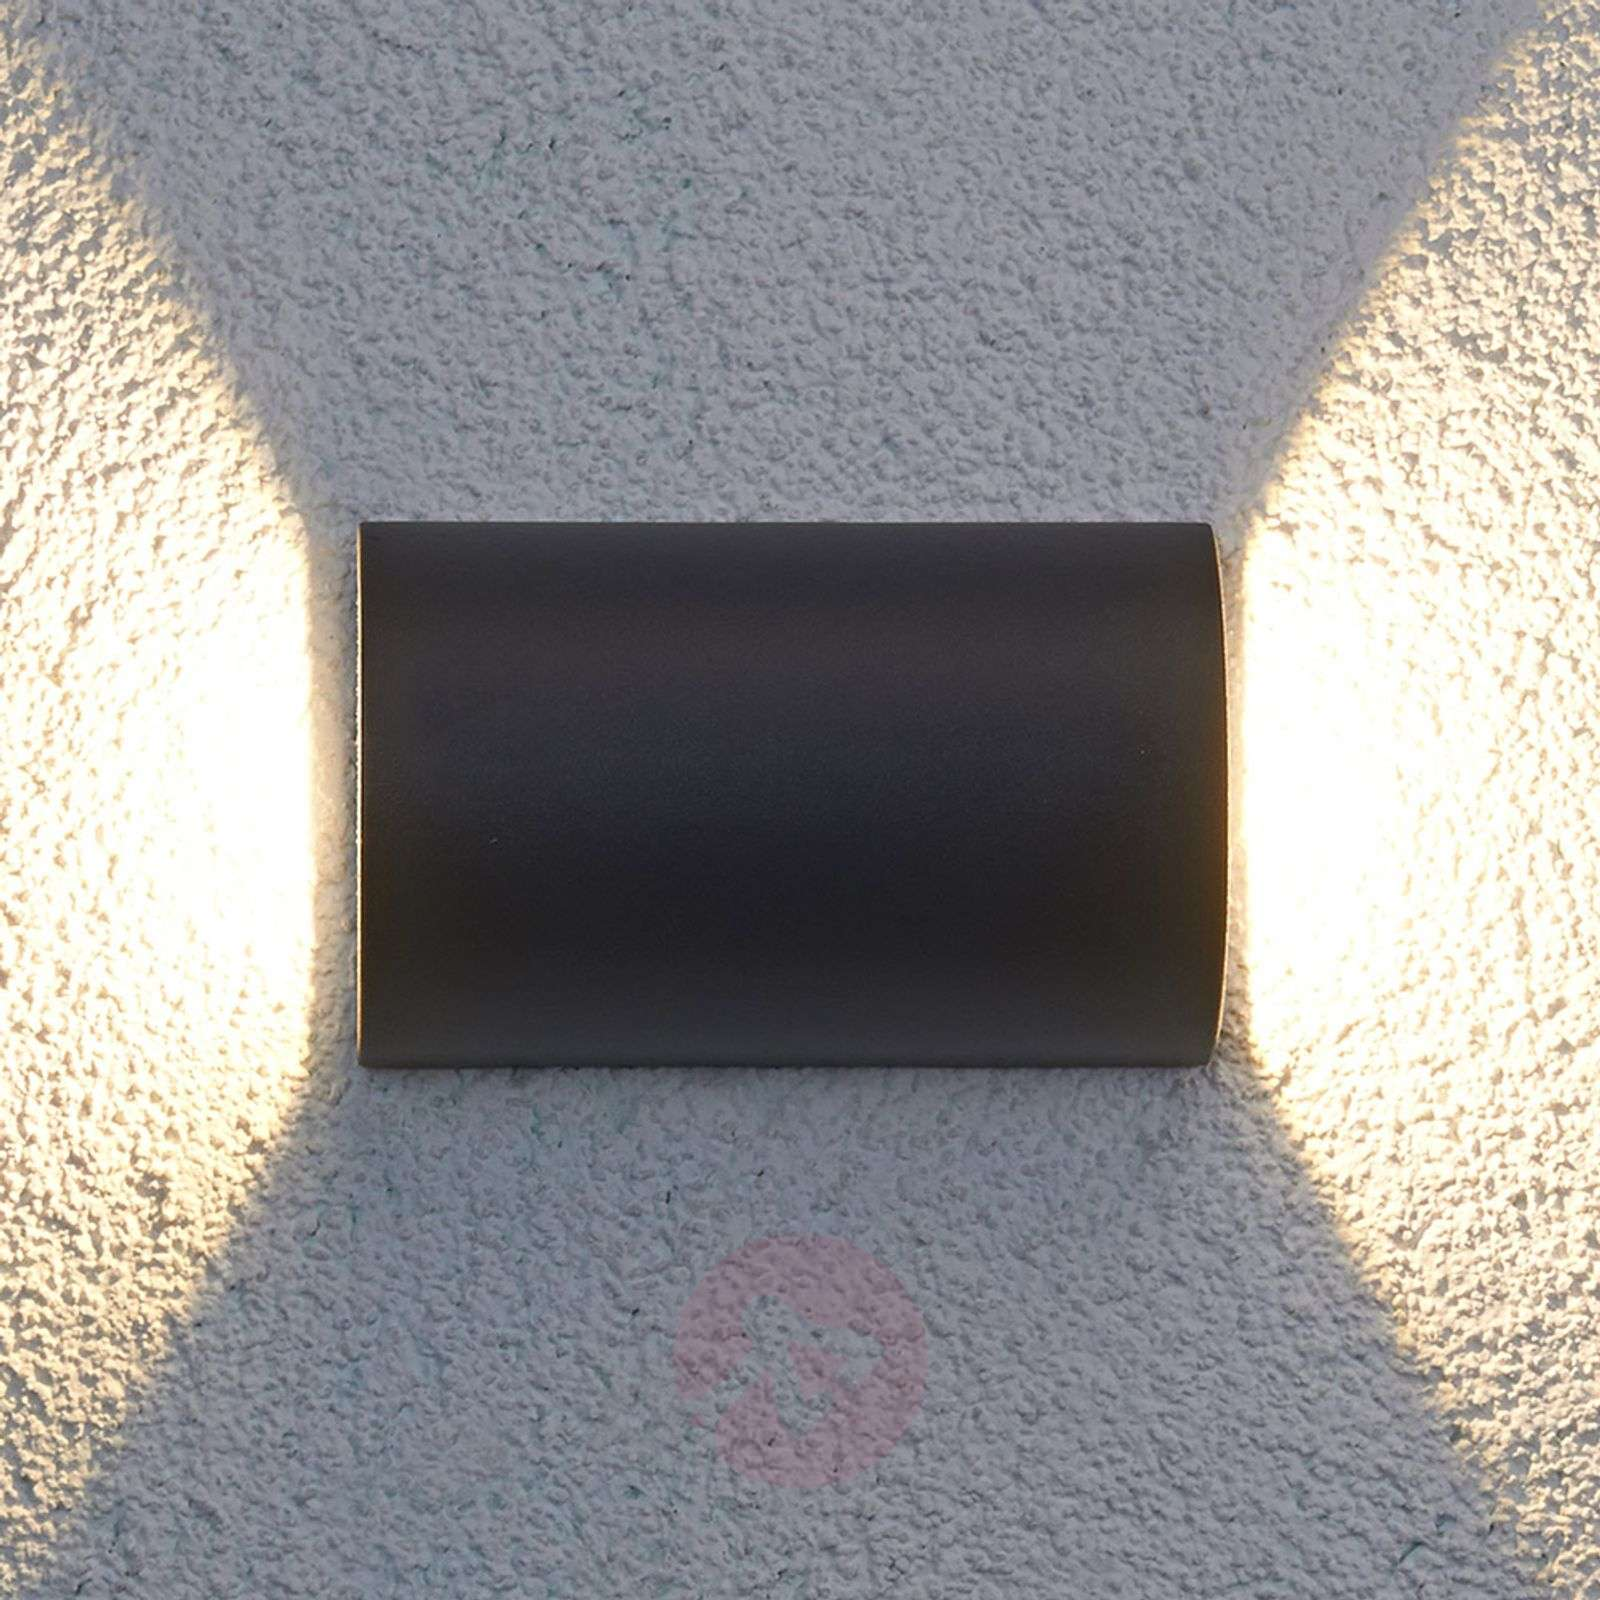 Jale semicircle LED outdoor light, 2 x 6 W-9618016-01